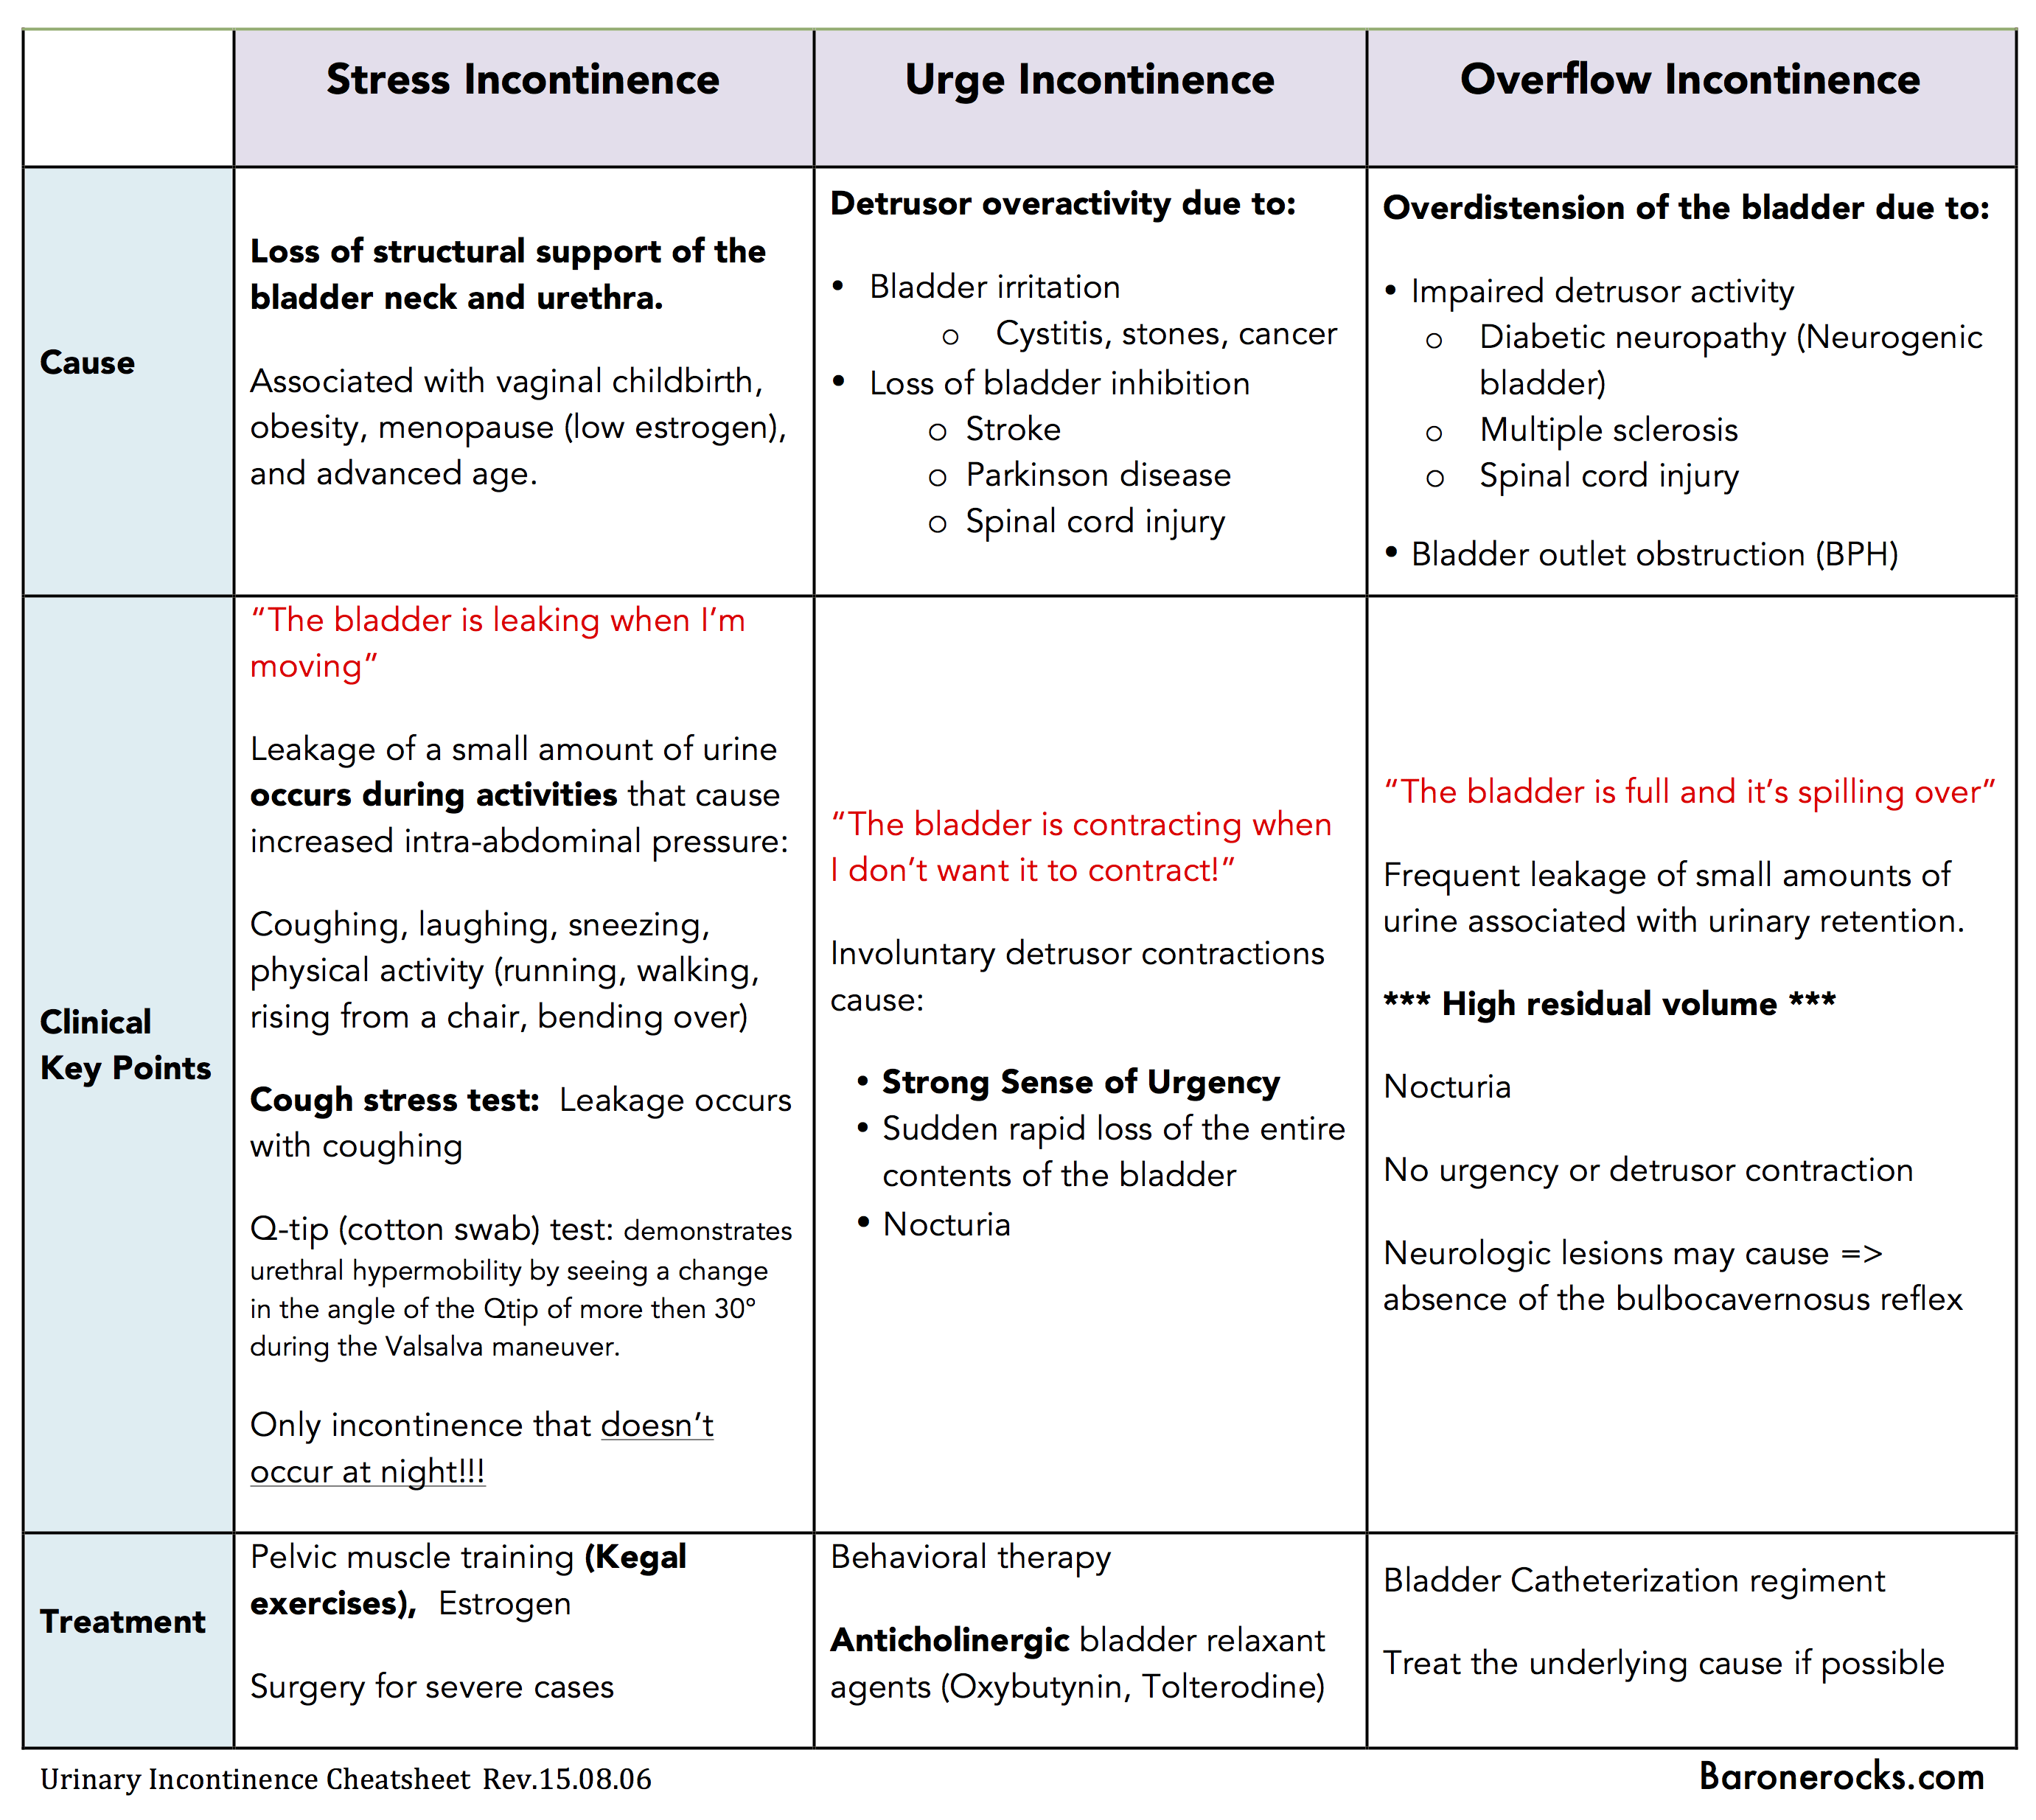 Urinary Incontinence Cheatsheet